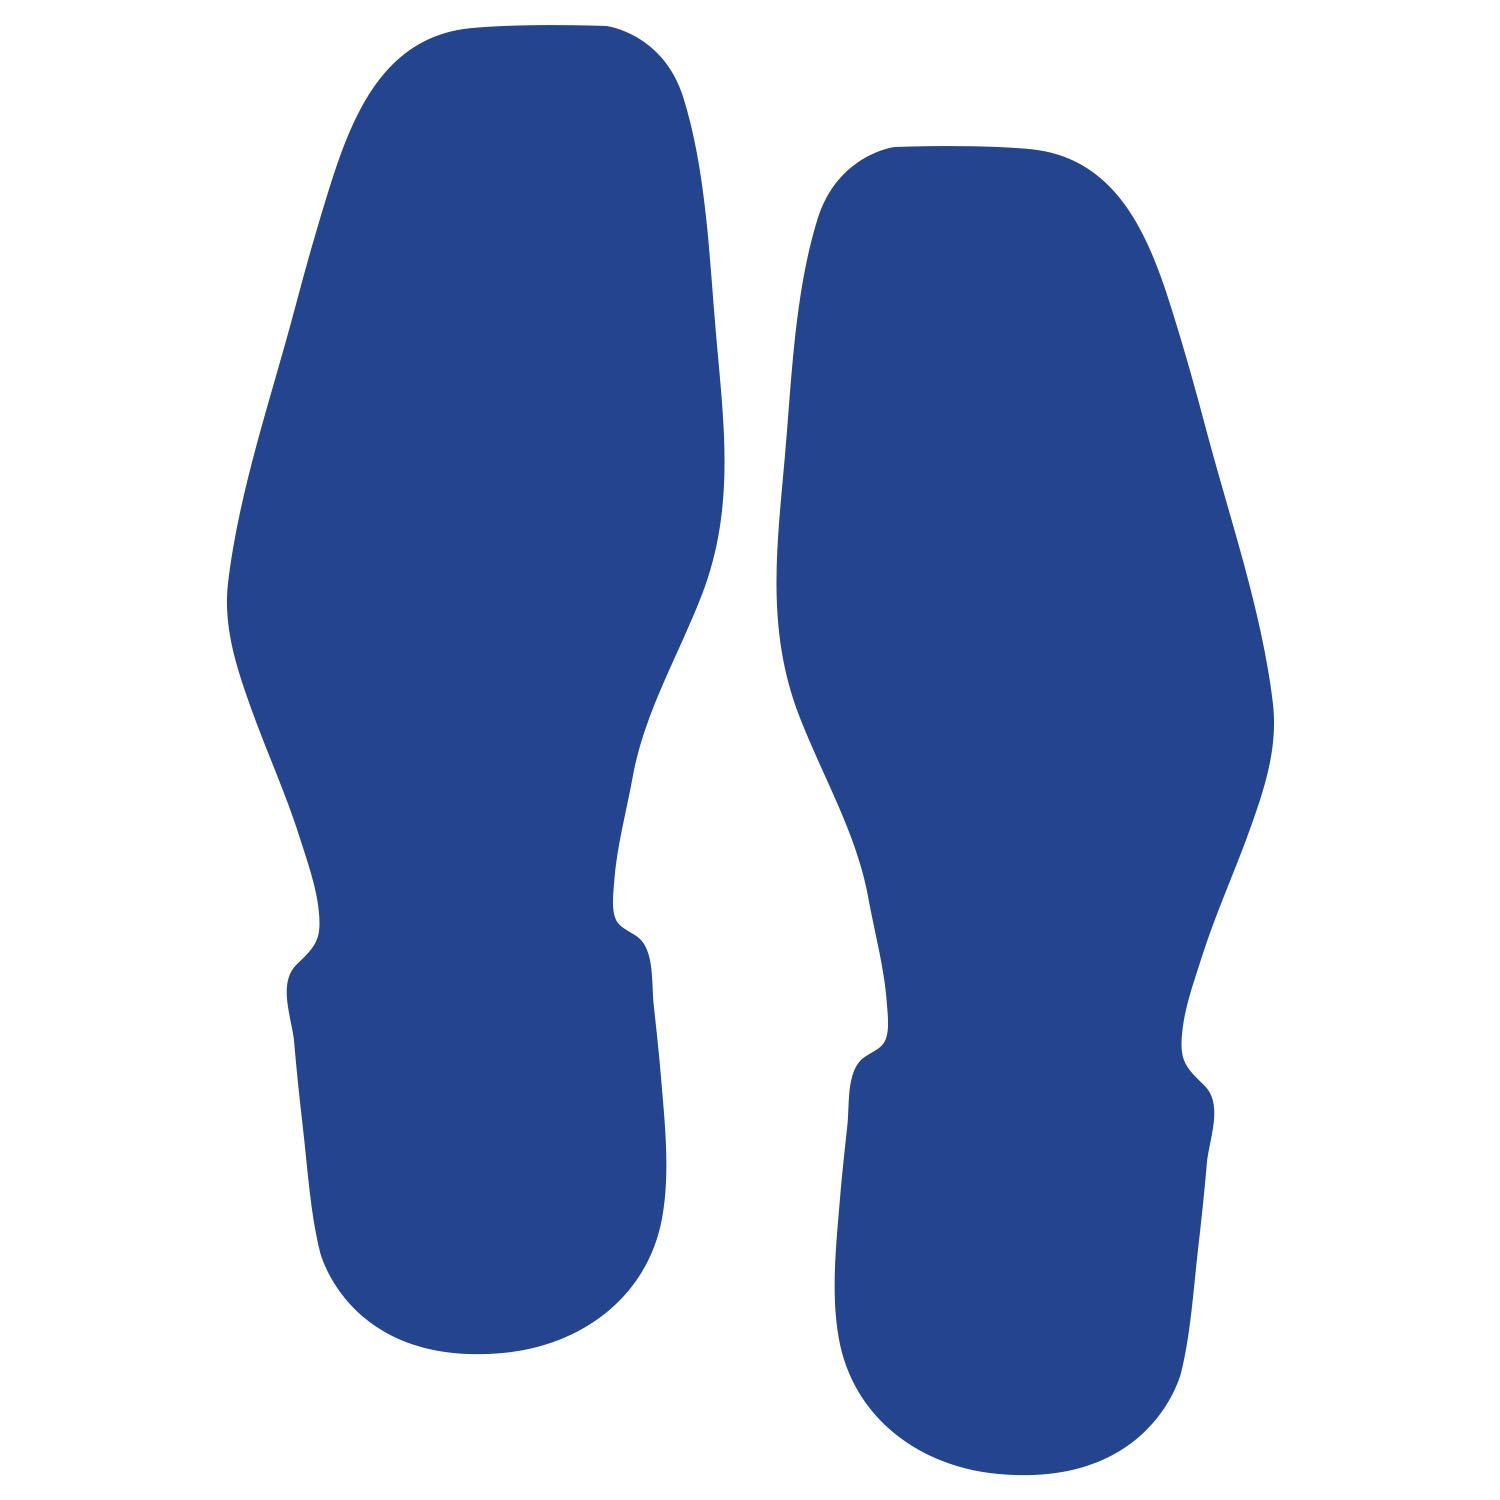 LiteMark 9 Inch Blue Removable Shoe Print Decal Stickers for Floors and Walls - Pack of 12